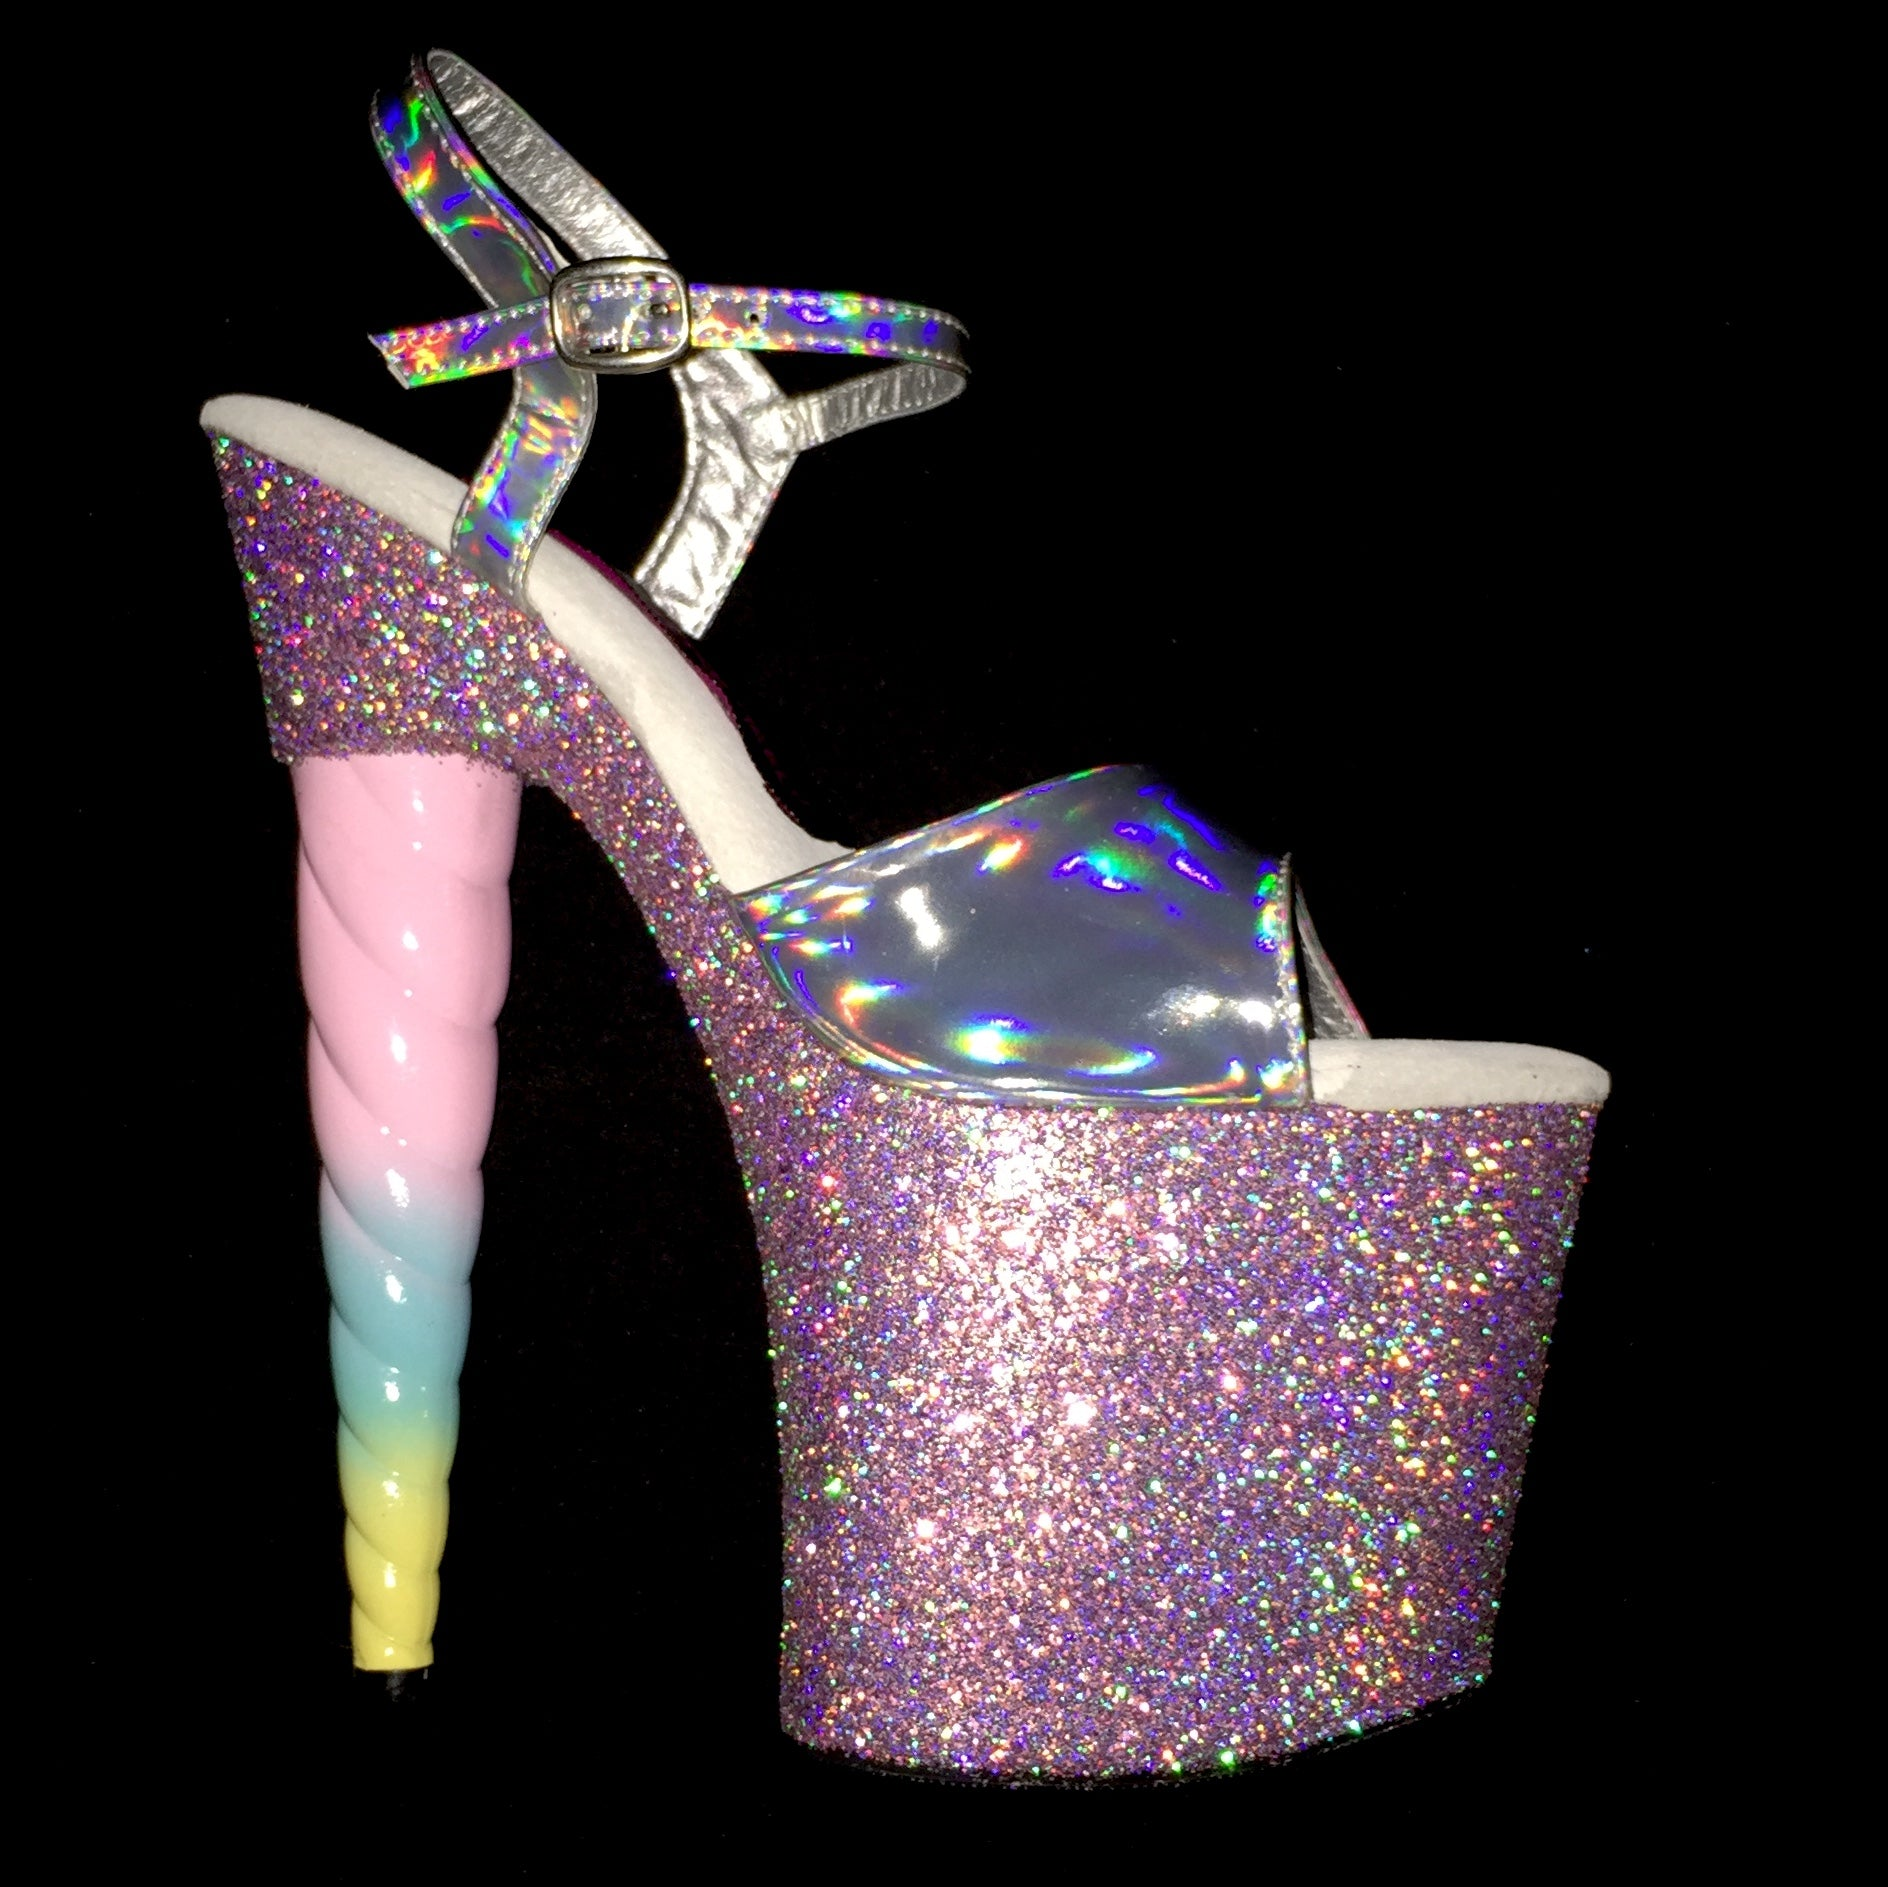 "7.5"" Unicorn Soul Holographic Strap in Twinkle -Limited Edition"